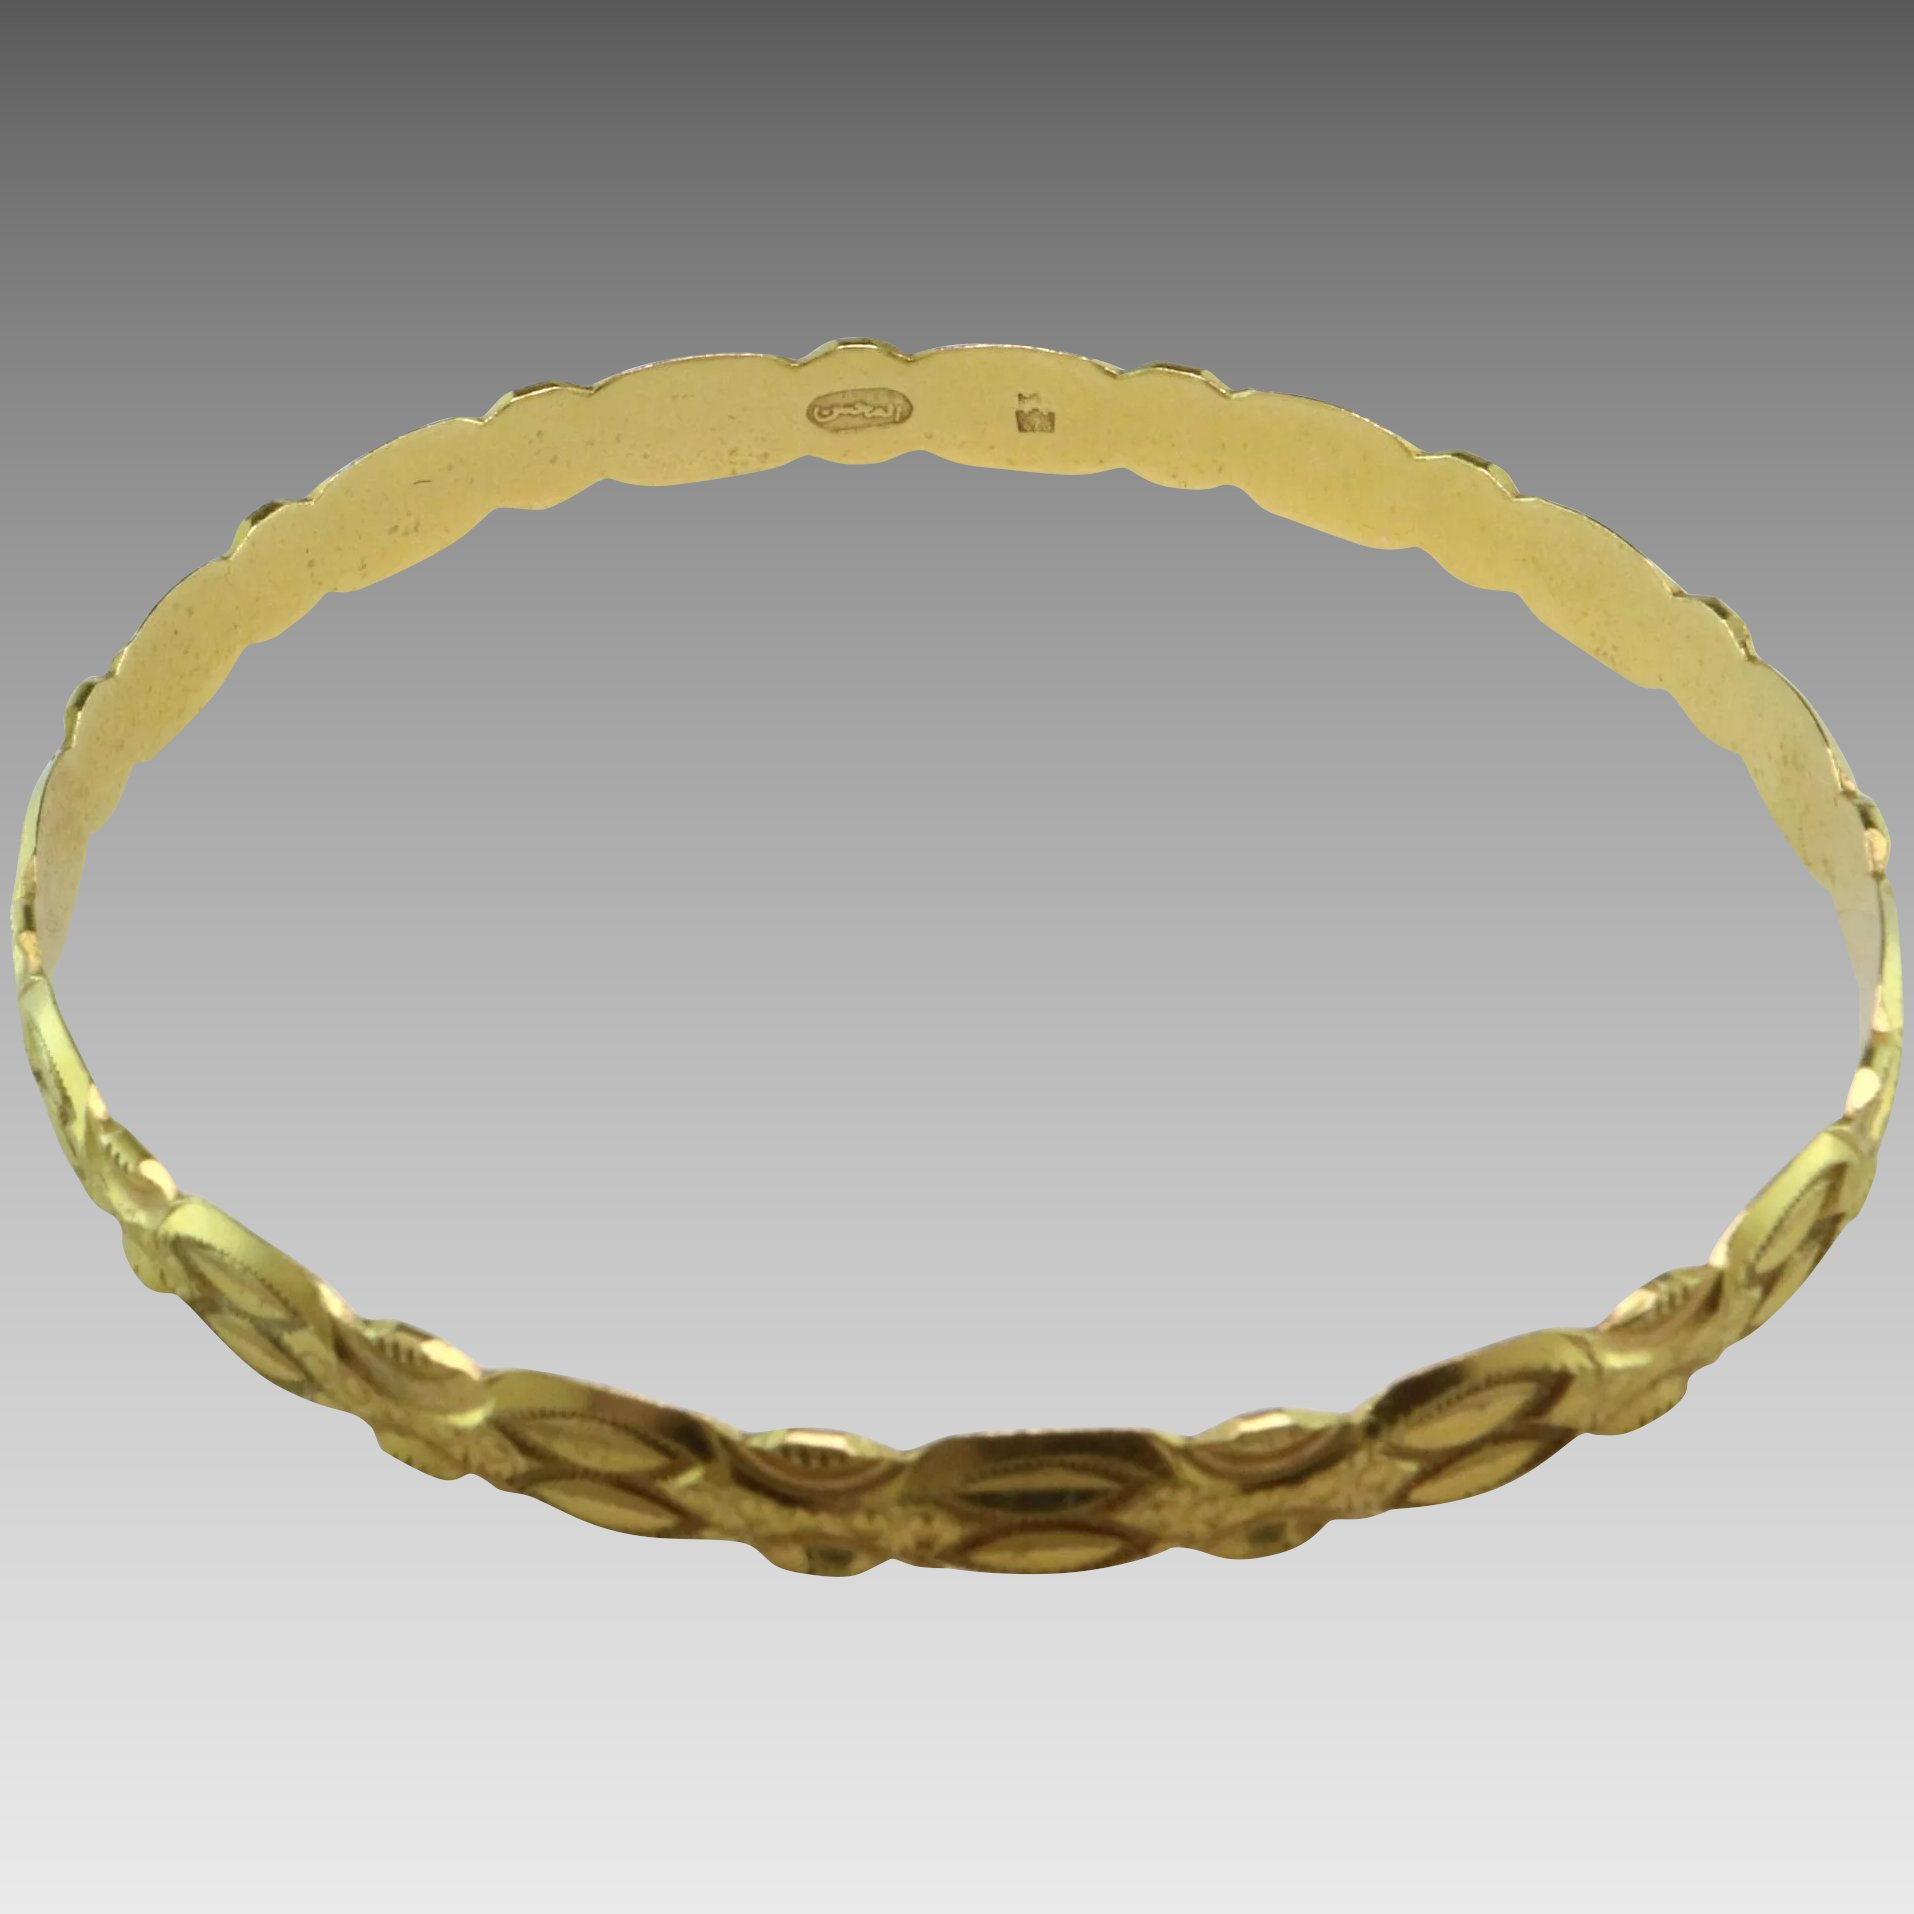 bracelets bangles product owned pre bangle karat clasp yellow gold with safety twisted